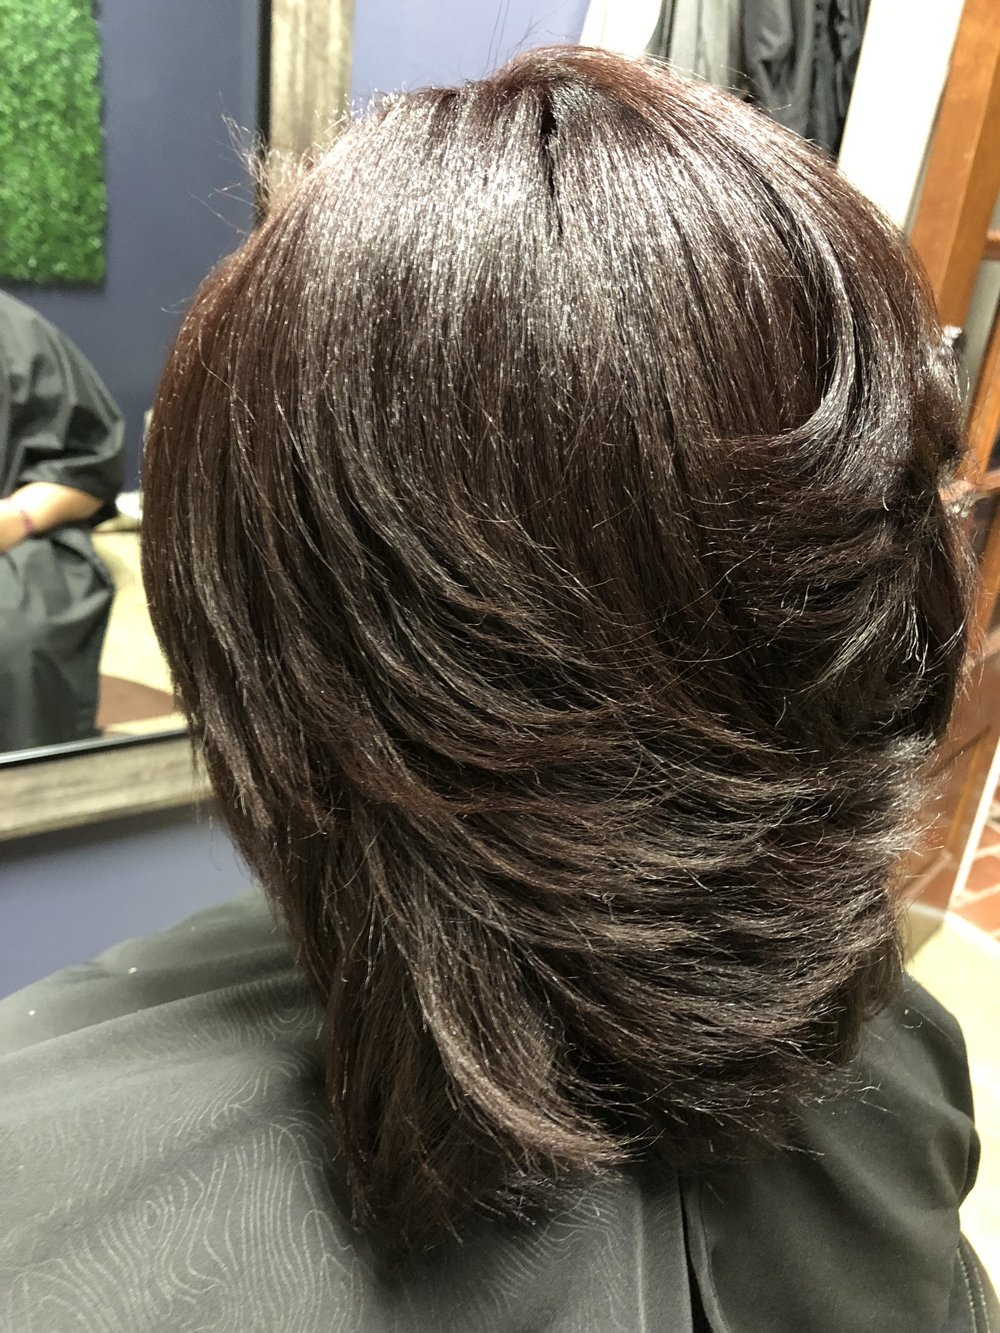 February 2018 - Current journey to healthier hair